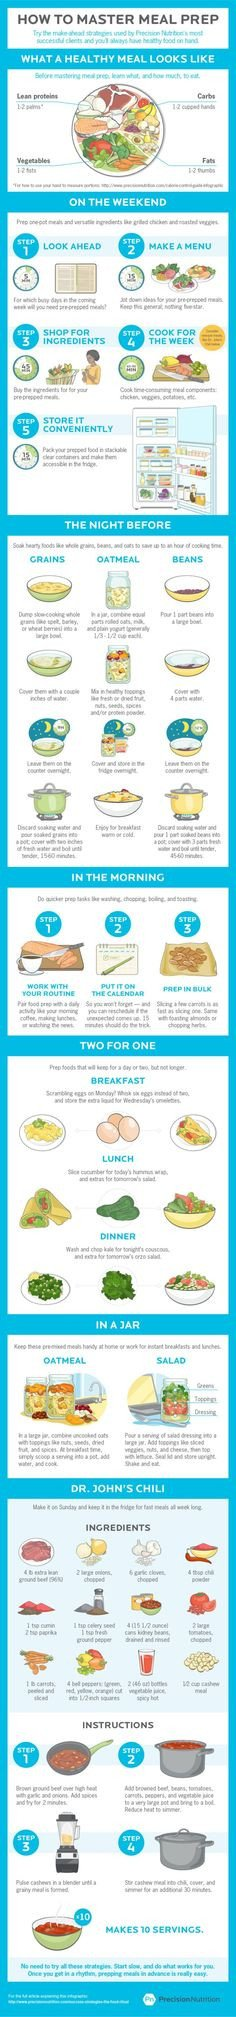 Precision Nutrition Meal Plan Template Here is A Blank Meal Plan Template You Can Use Diet Plan